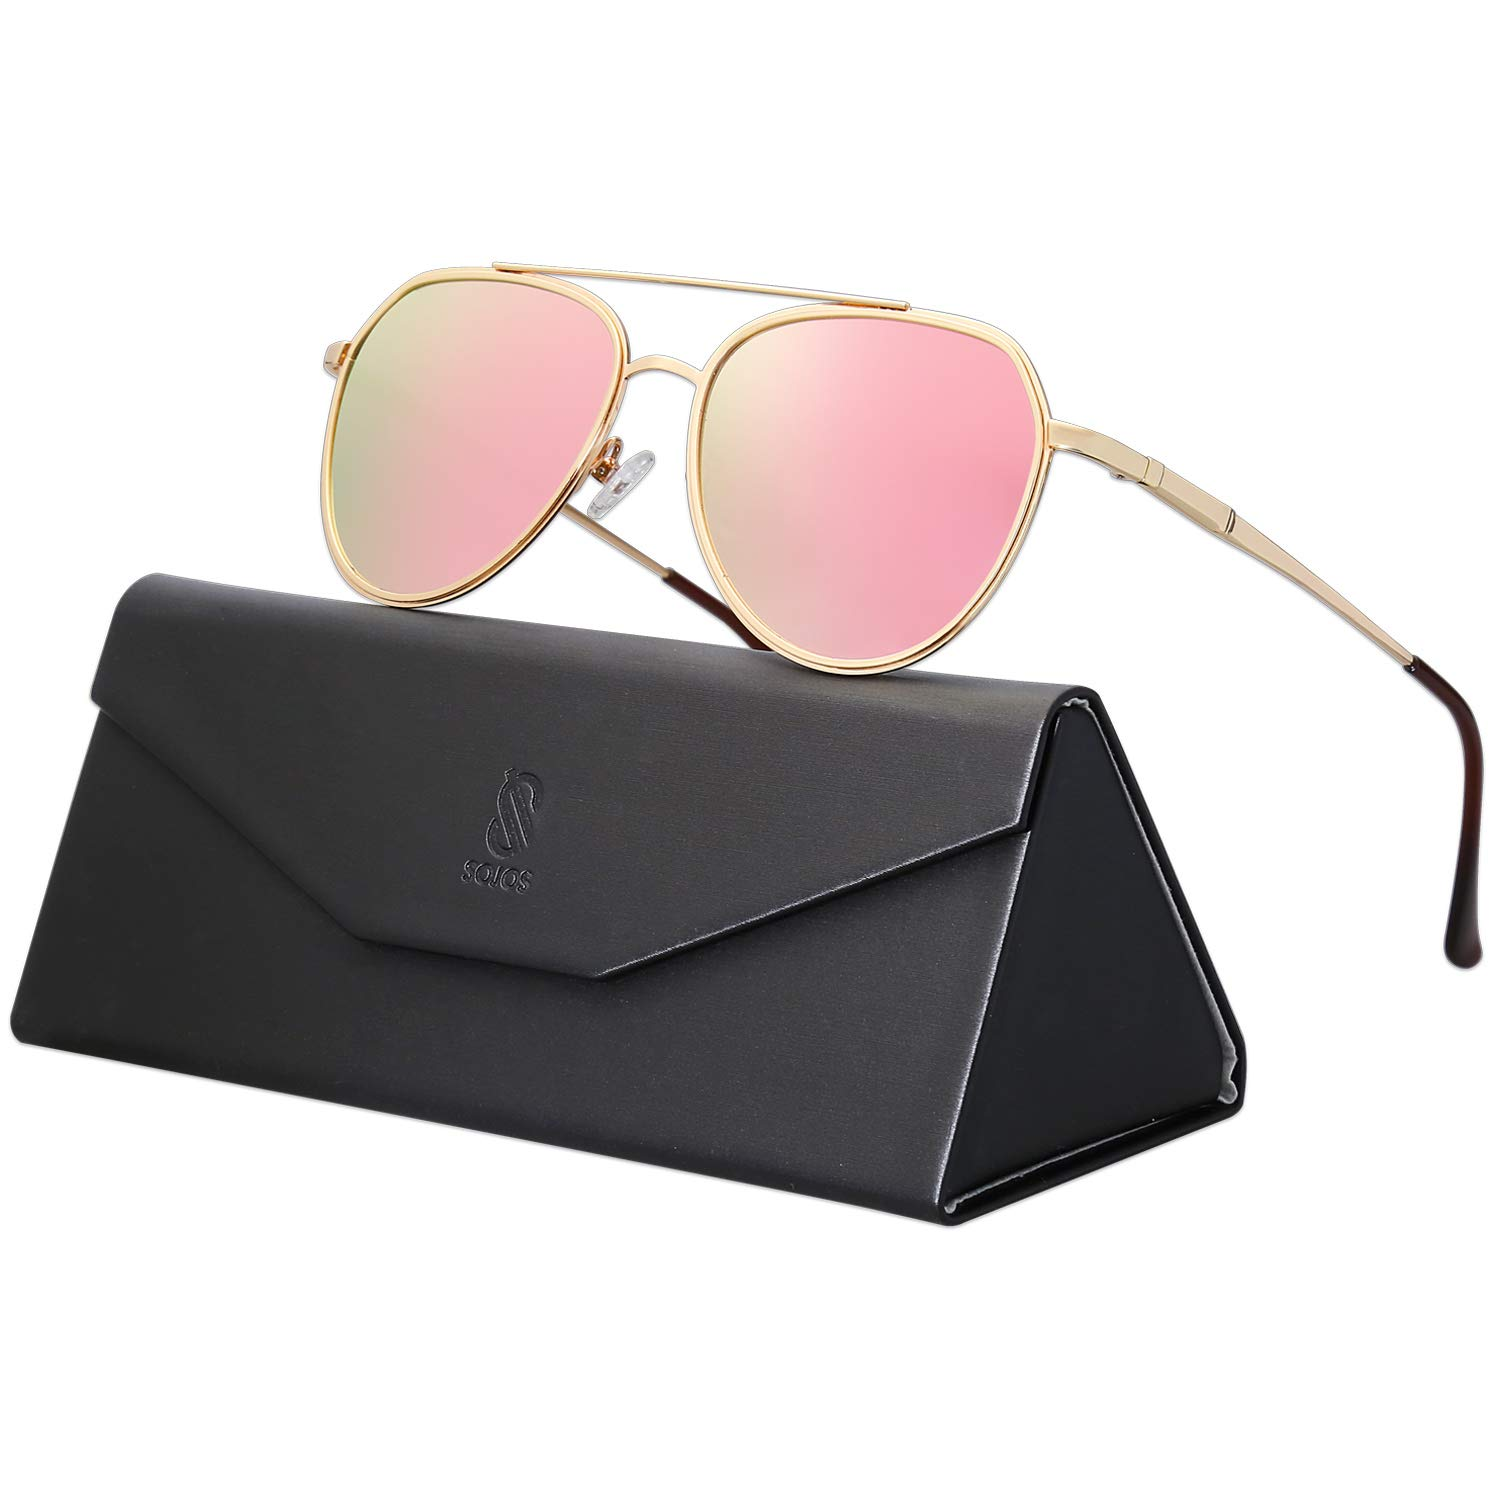 SOJOS Classic Polarized Small Aviator Sunglasses for Women Men FEARLESS SJ1115 with Gold Frame/Pink Mirrored Lens by SOJOS